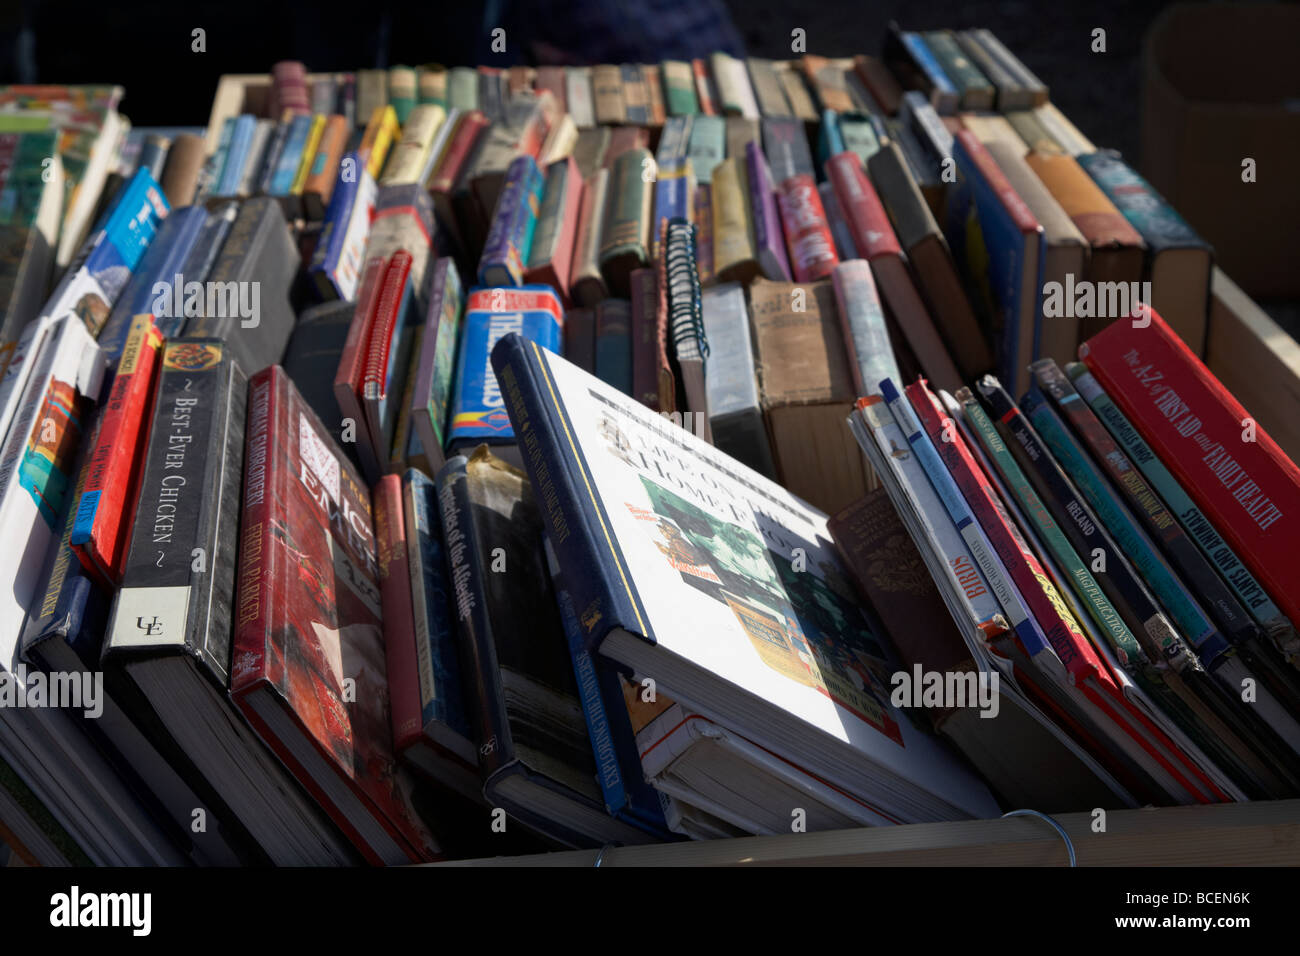 2nd hand books on a stall at a car boot sale in newtownabbey northern ireland uk - Stock Image